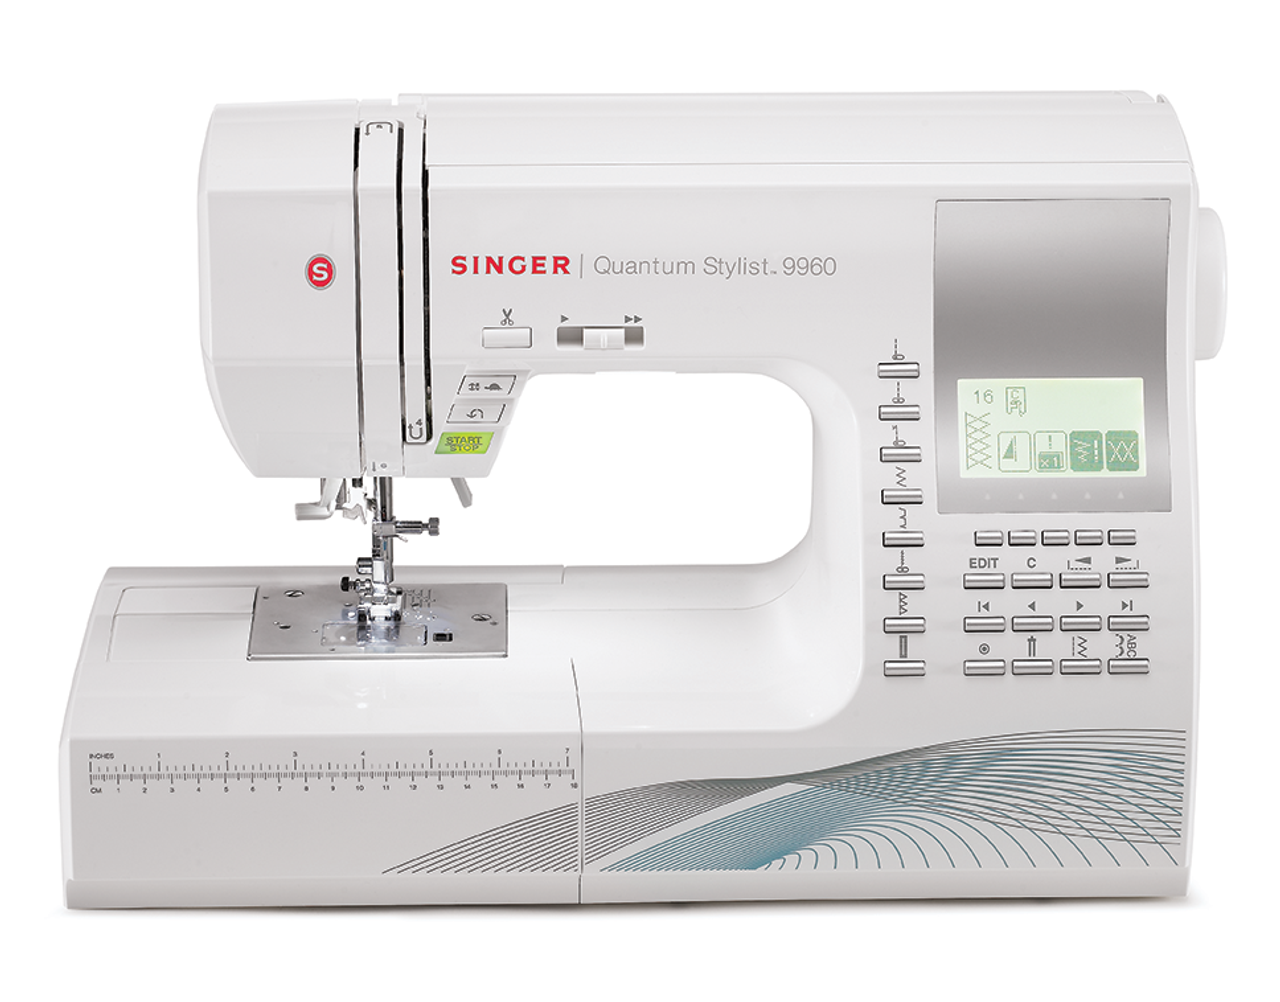 Singer Quantum Stylist 9960 Sewing Machine